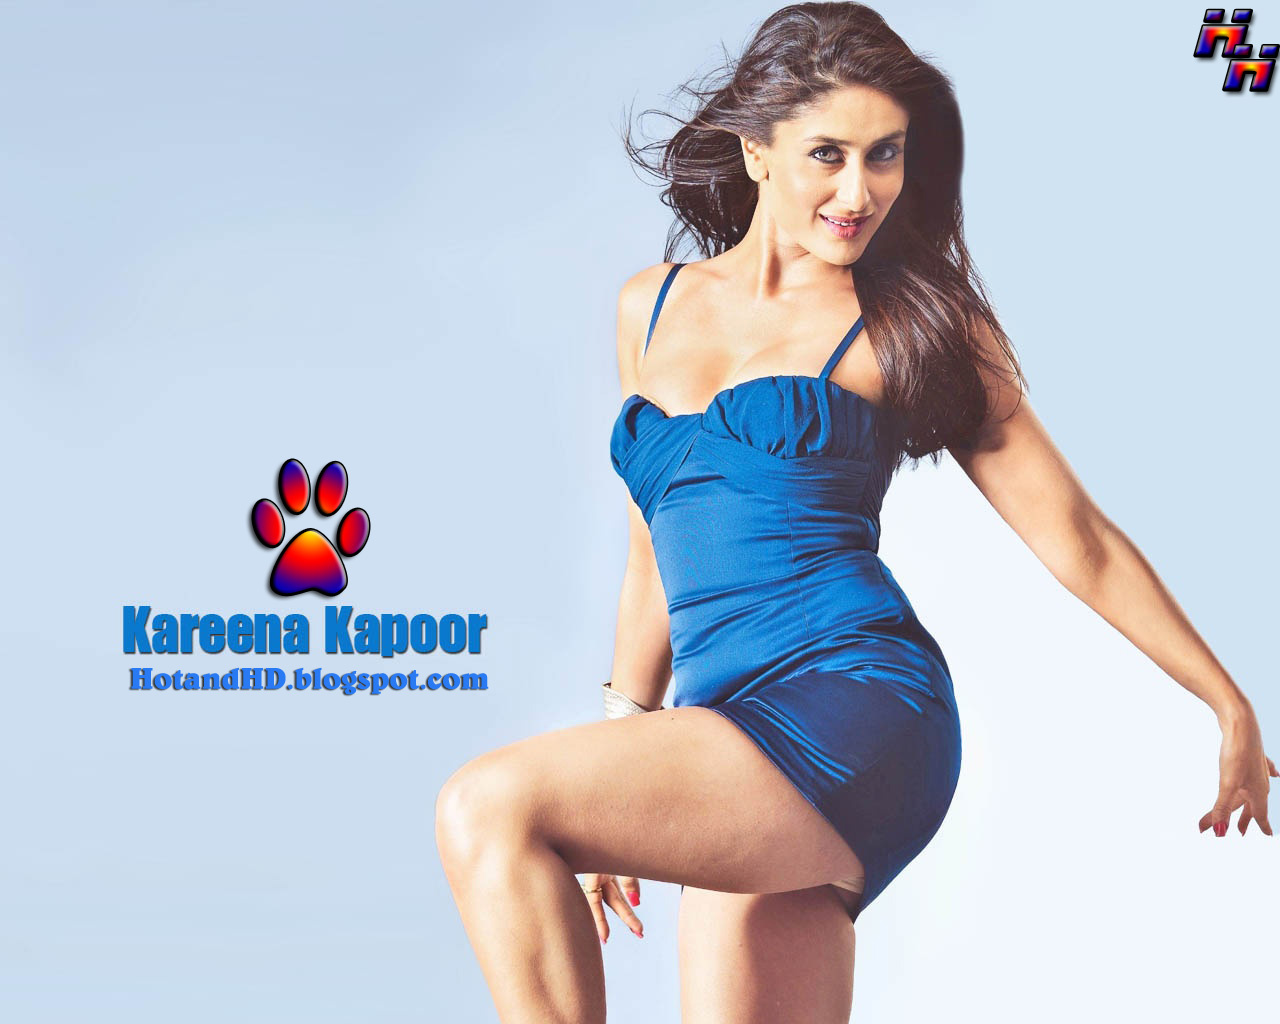 Kareena Kapoor Hot Sexy Nude Hd Wallpapers, Pictures -6390